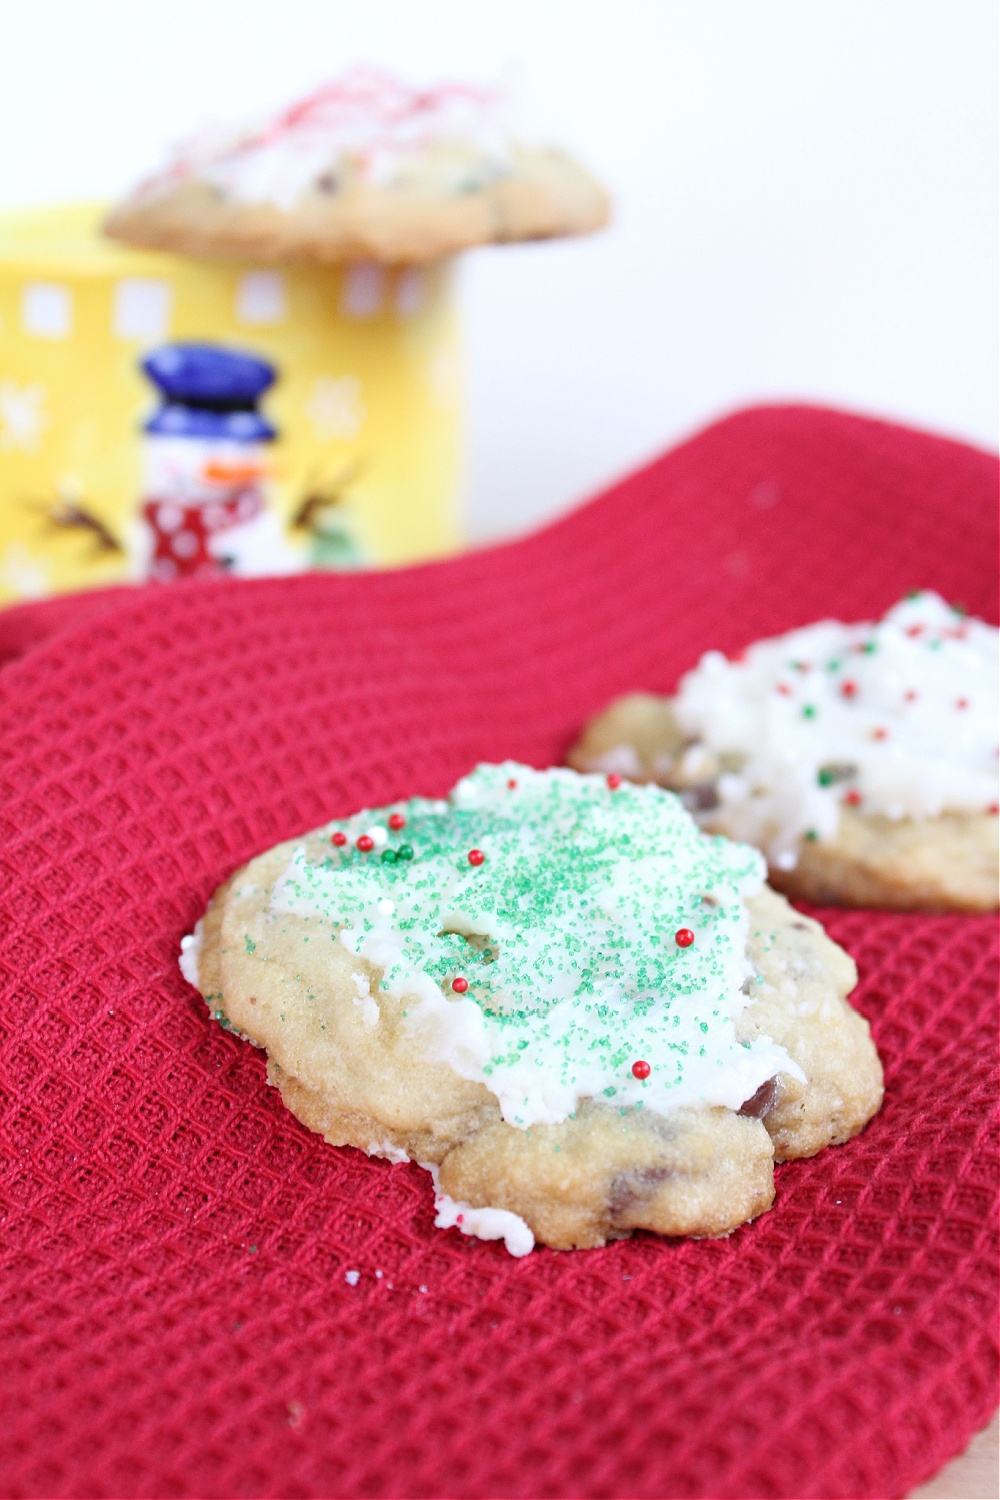 Tasty Peppermint Chocolate Chip Cookies with Frosting